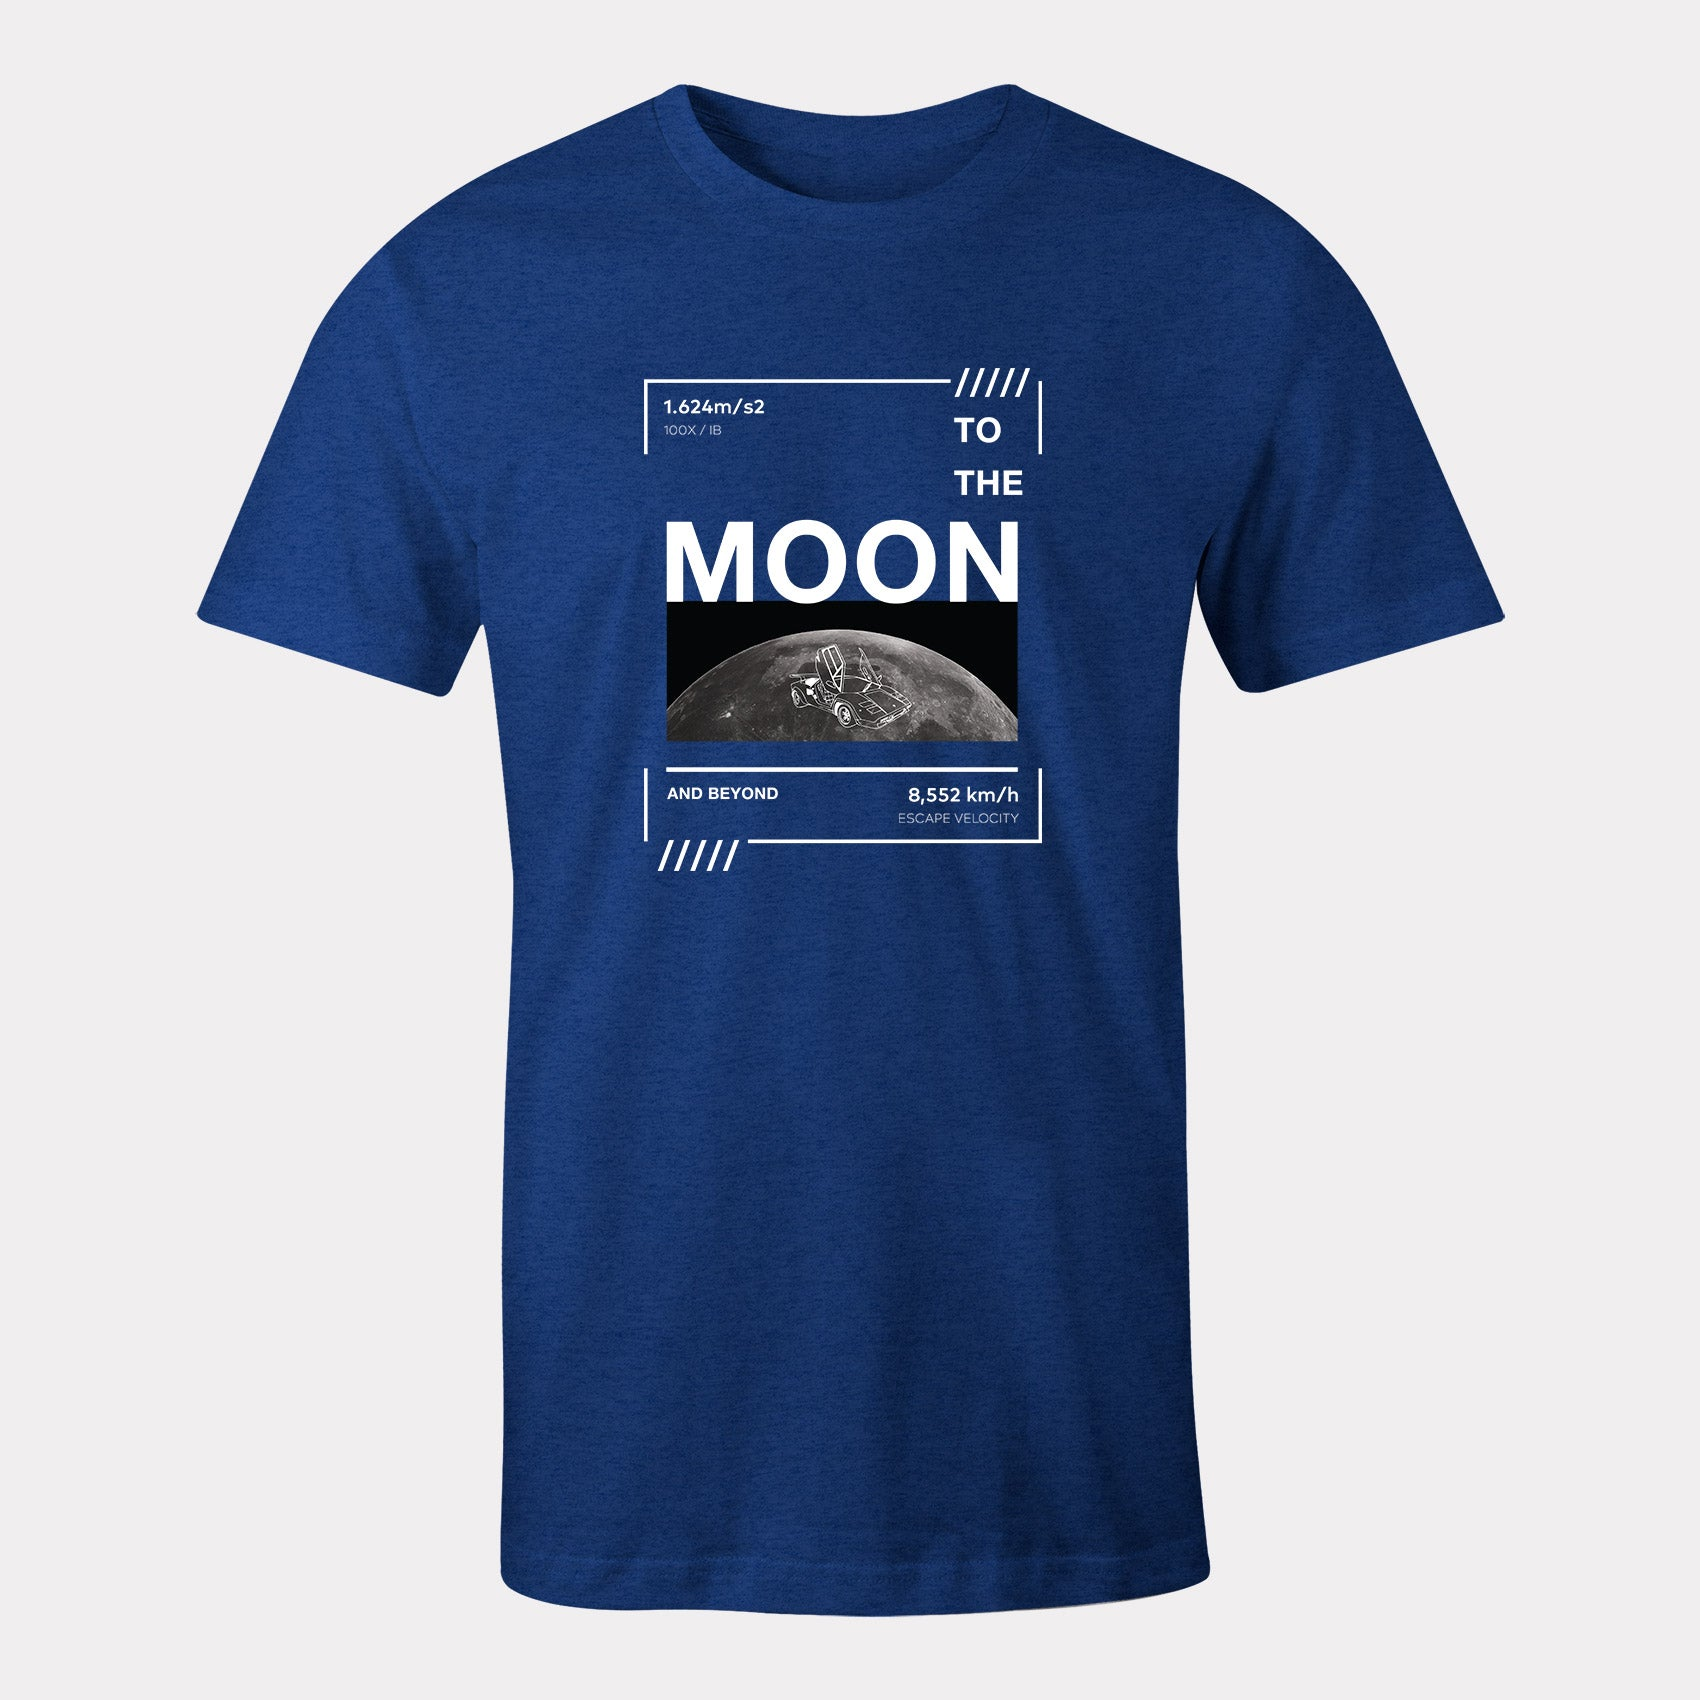 lambo on moon t-shirt